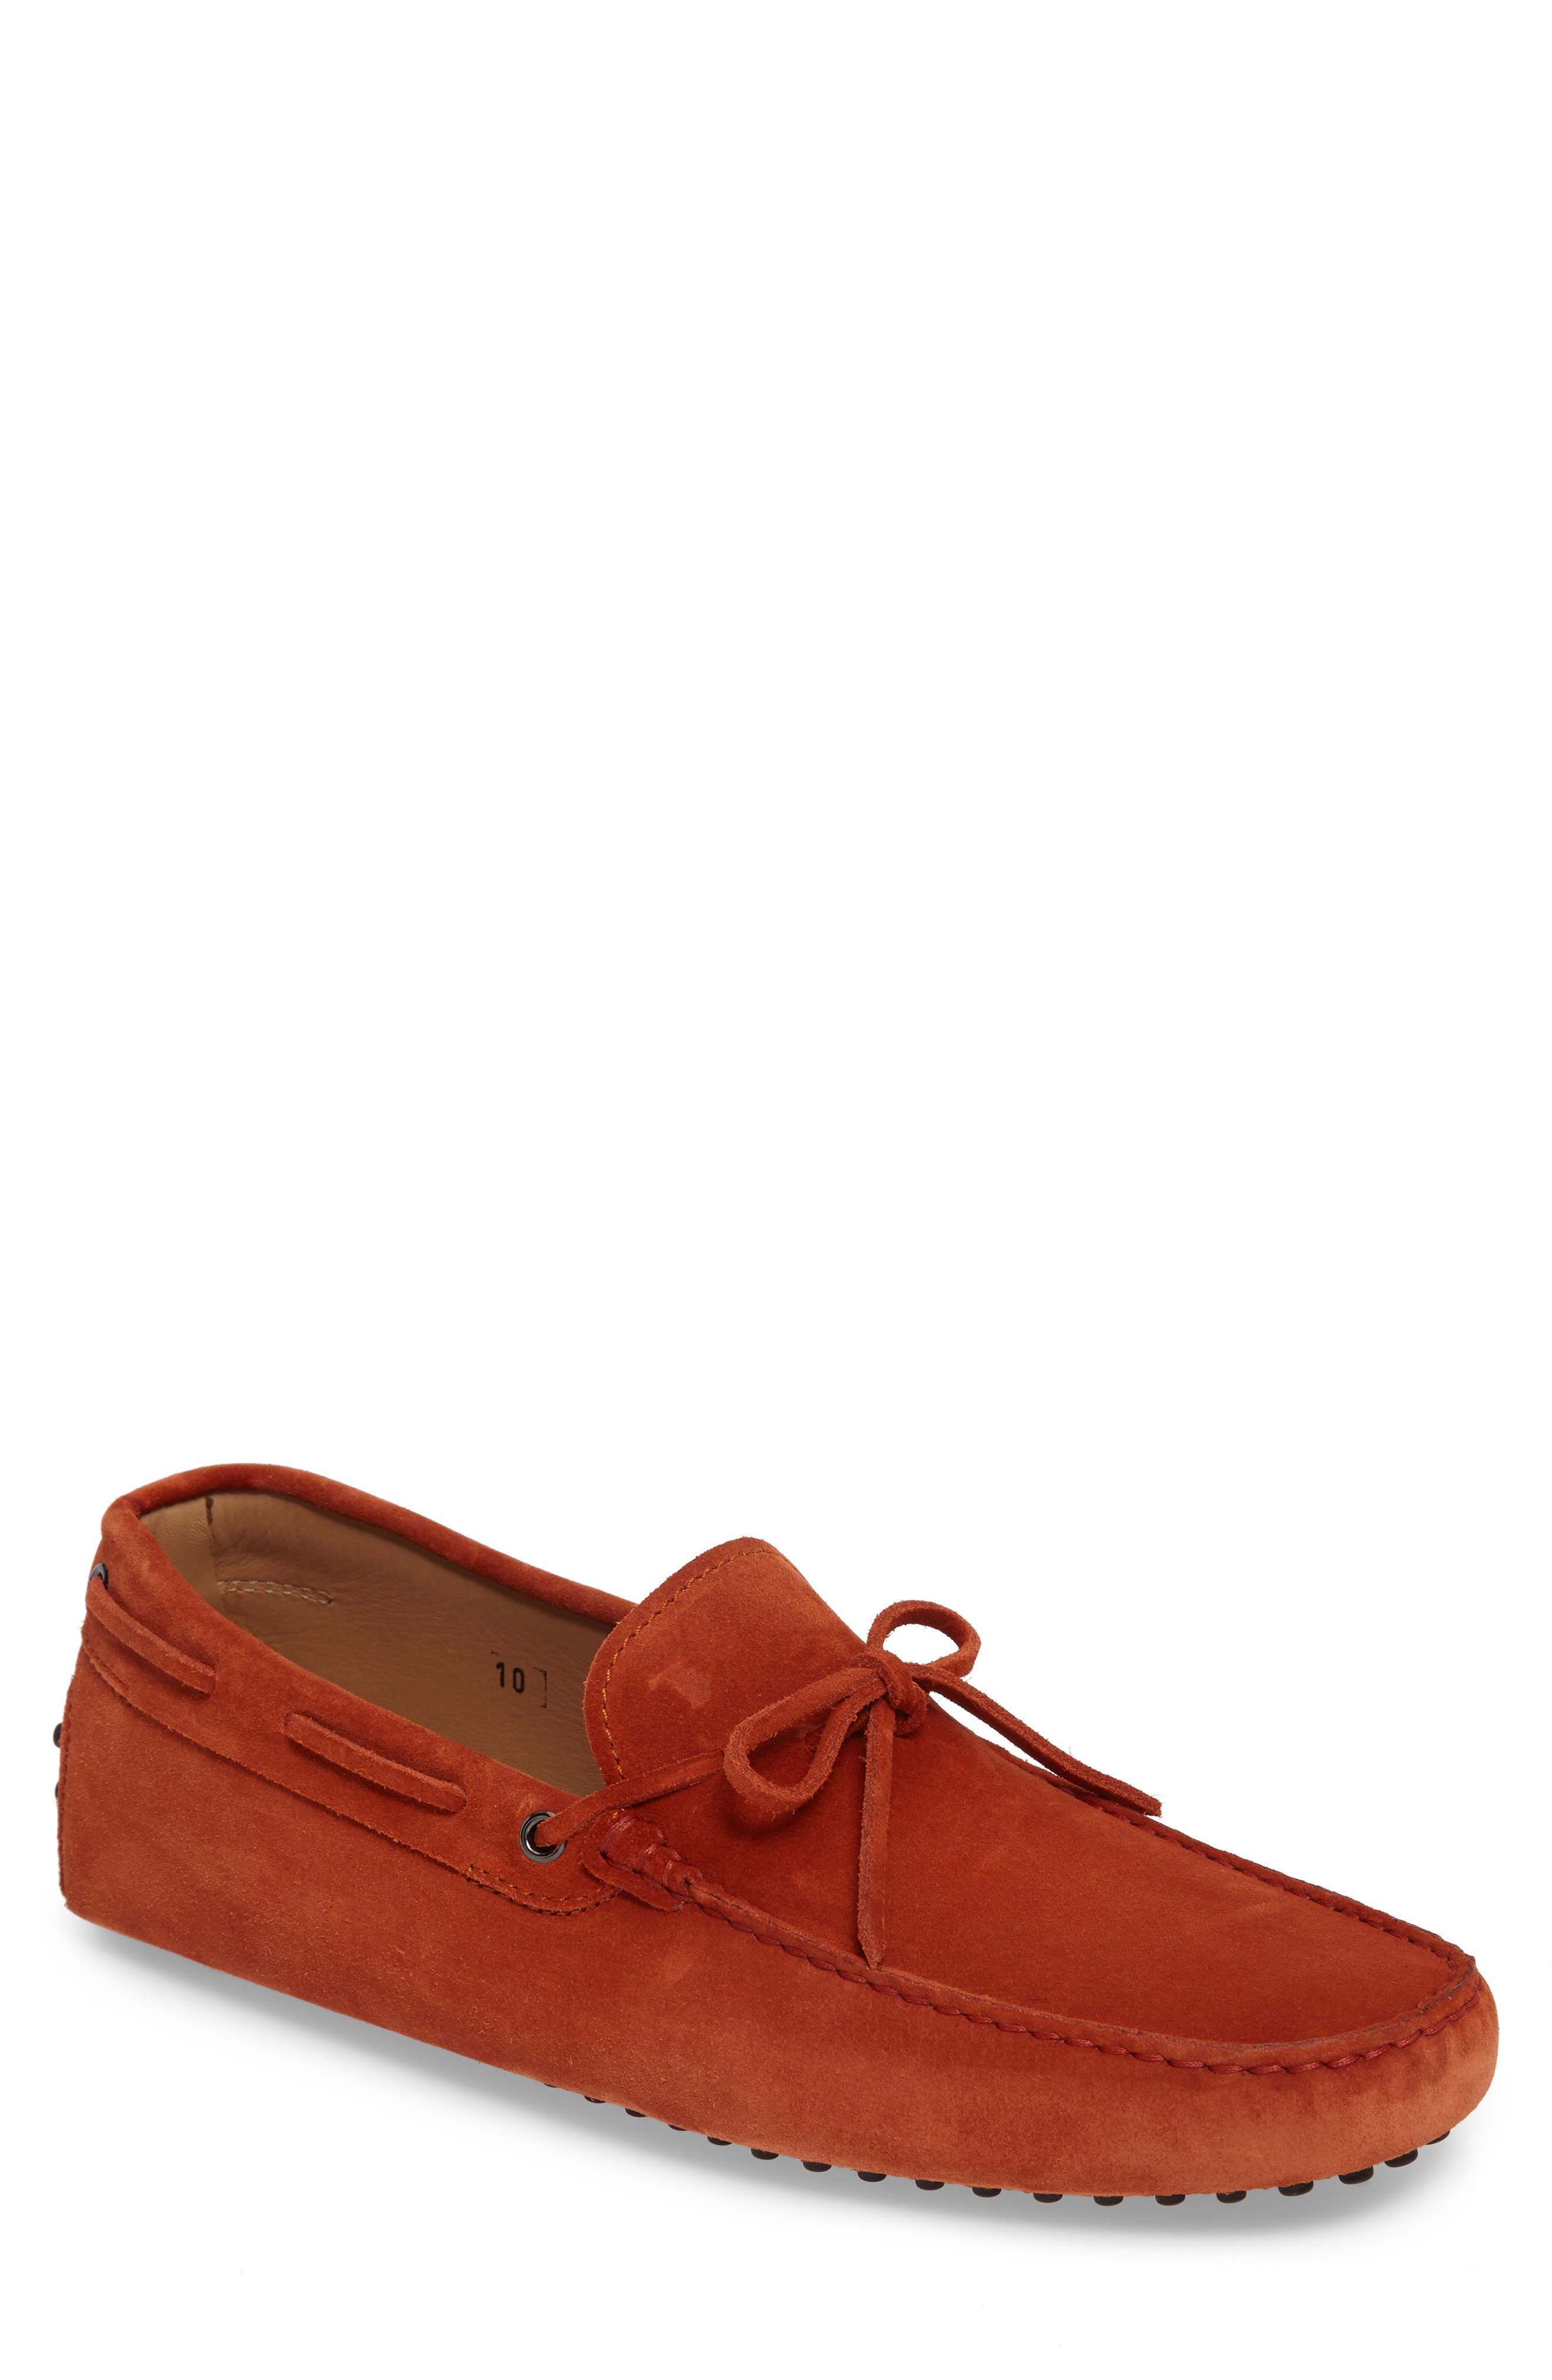 Main Image - Tod's Gommini Tie Front Driving Moccasin (Men)